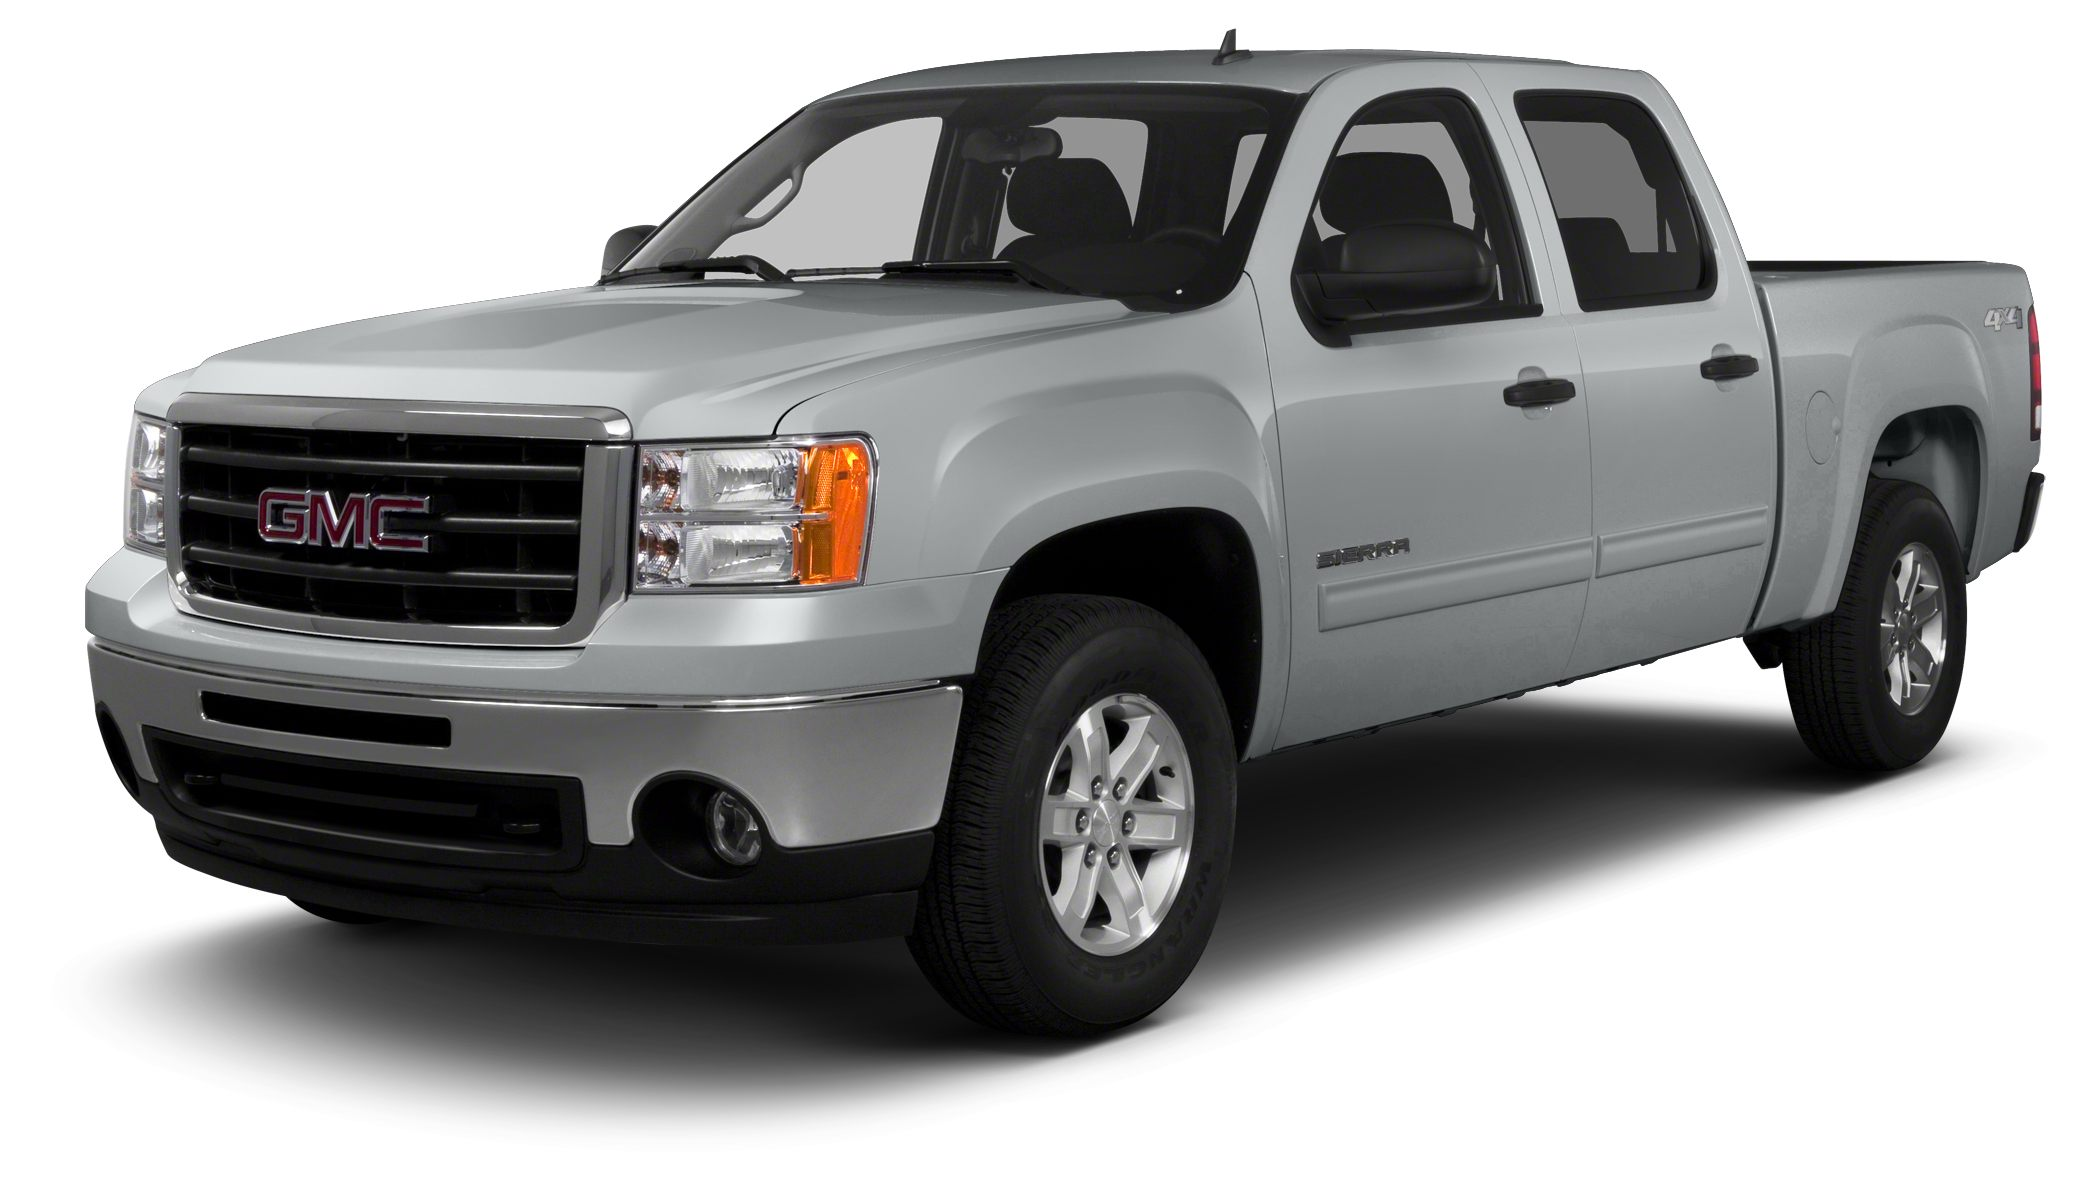 2013 GMC Sierra 1500 SLE Snatch a deal on this 2013 GMC Sierra 1500 SLE before someone else takes